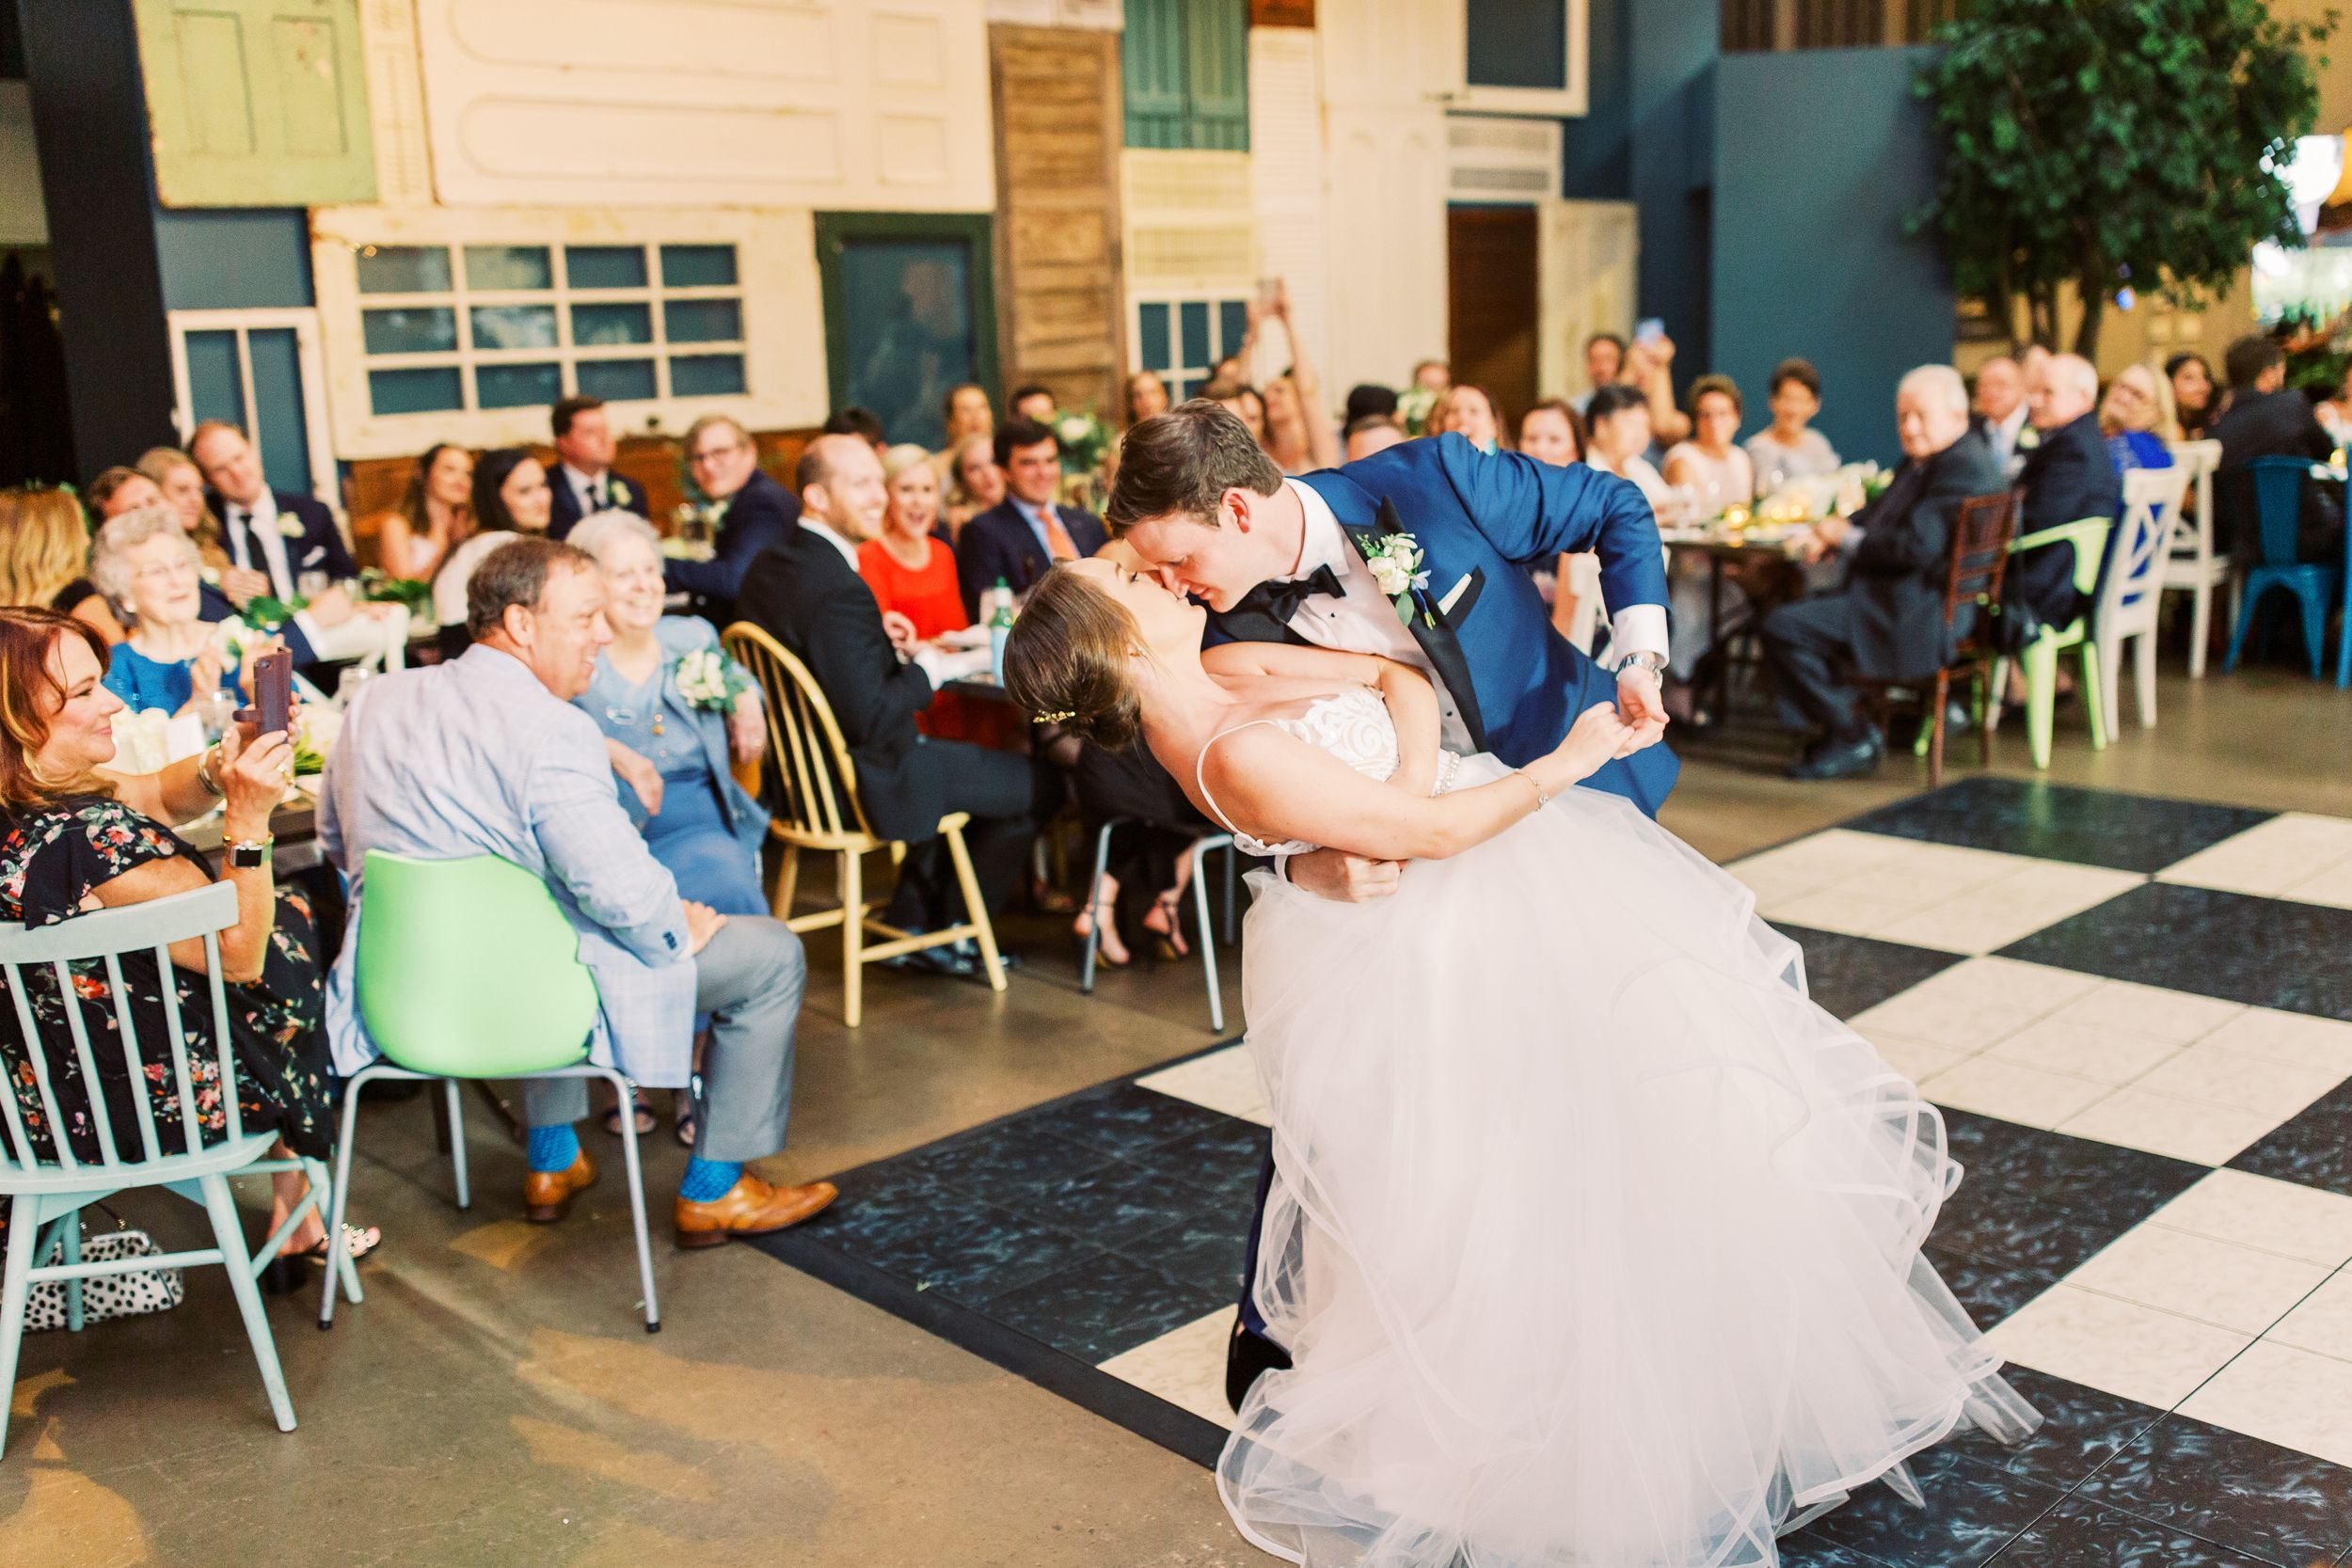 bride and groom dip kiss during their first dance at their soho south cafe wedding reception in savannah, ga